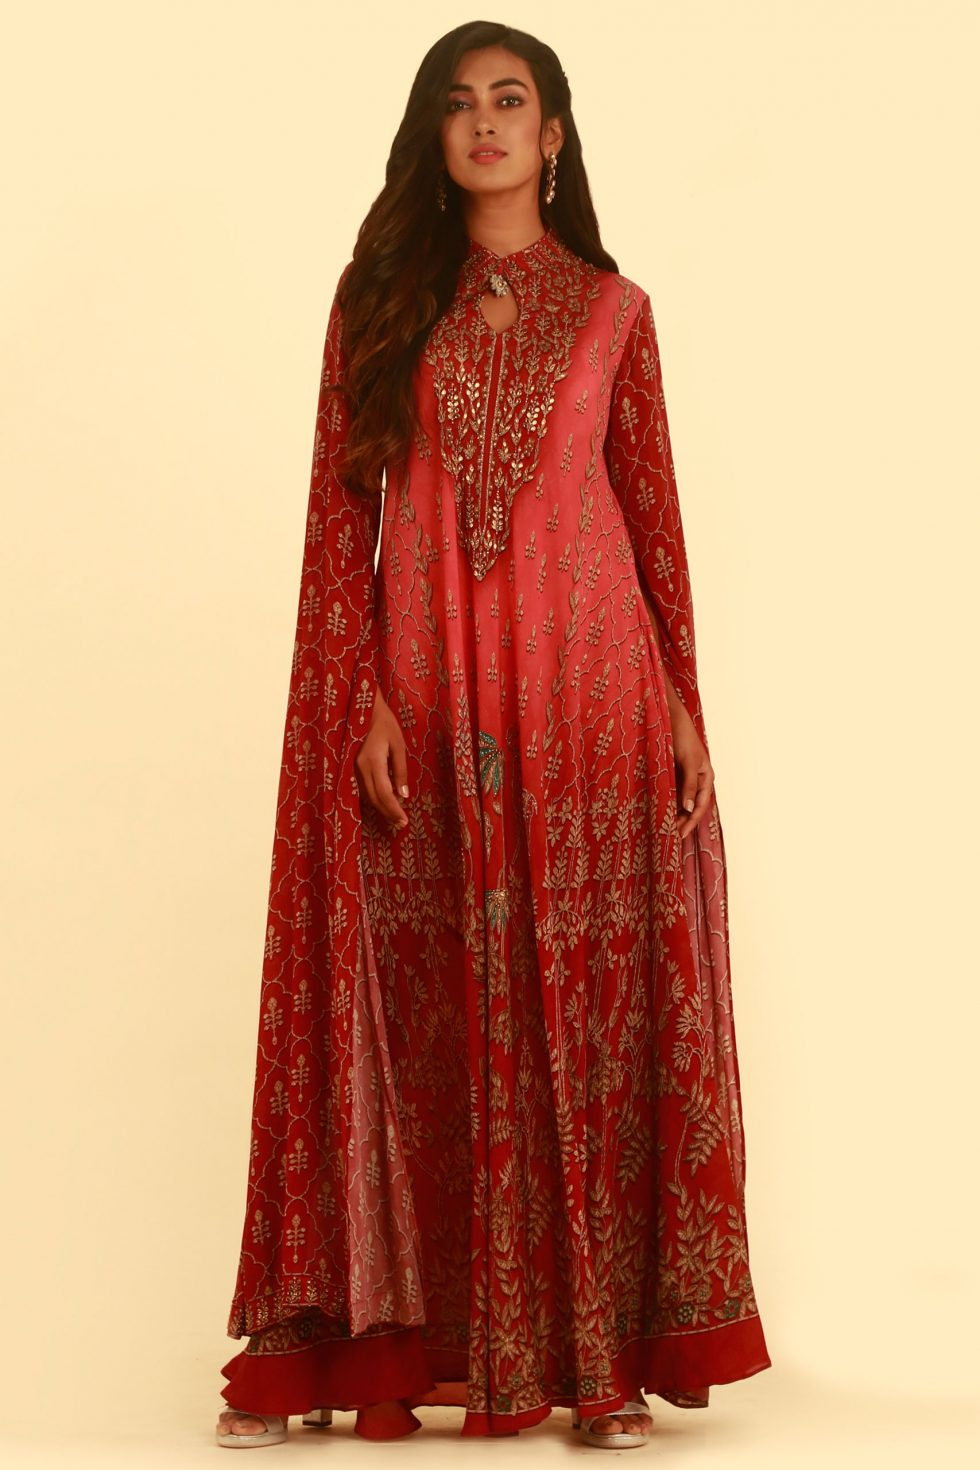 Red pink printed kurti with slit kaftan sleeves and gold emembellishments